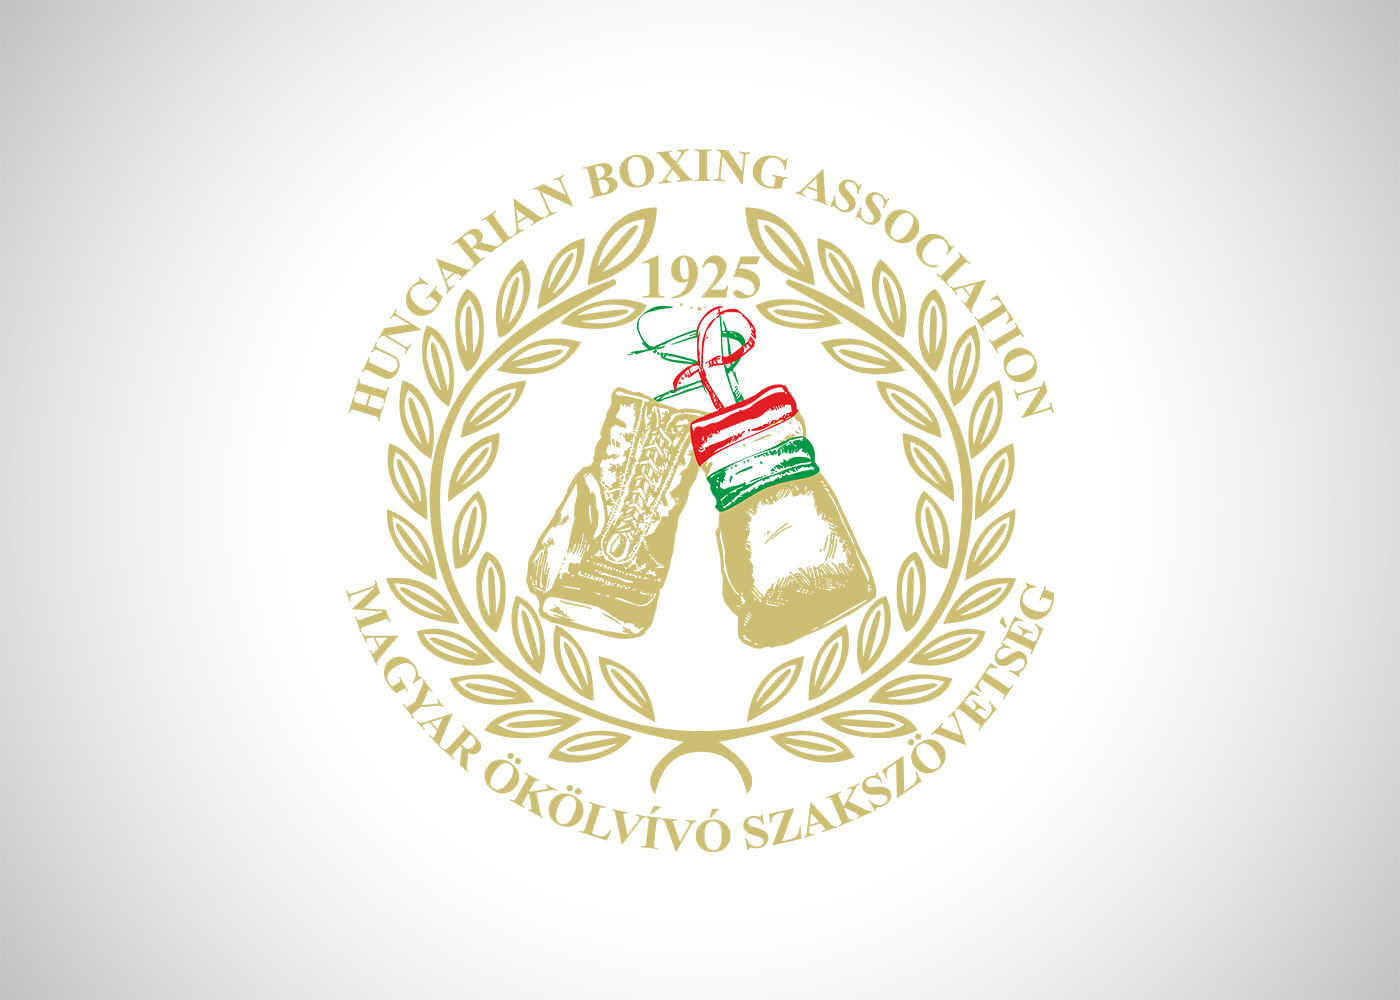 Update On Kosovo Boxing Federation And The AIBA World Boxing Championships